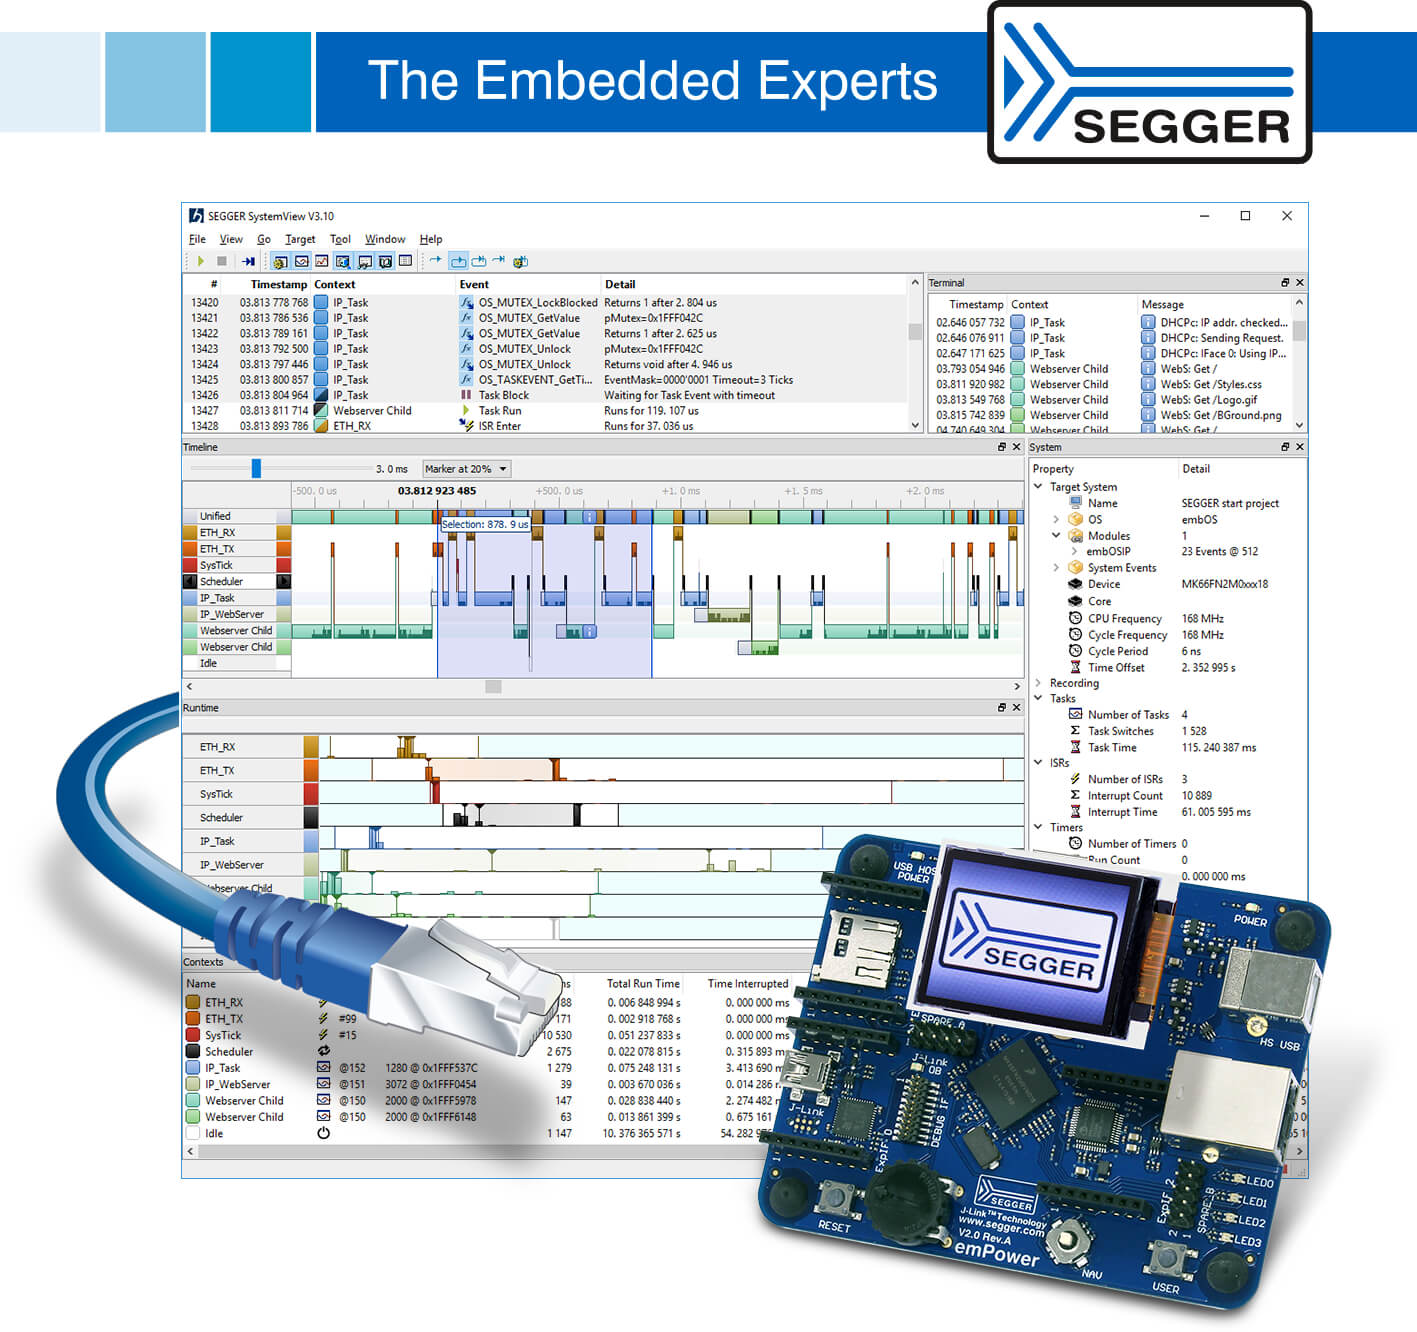 SEGGER's SystemView adds data acquisition via UART and TCP/IP